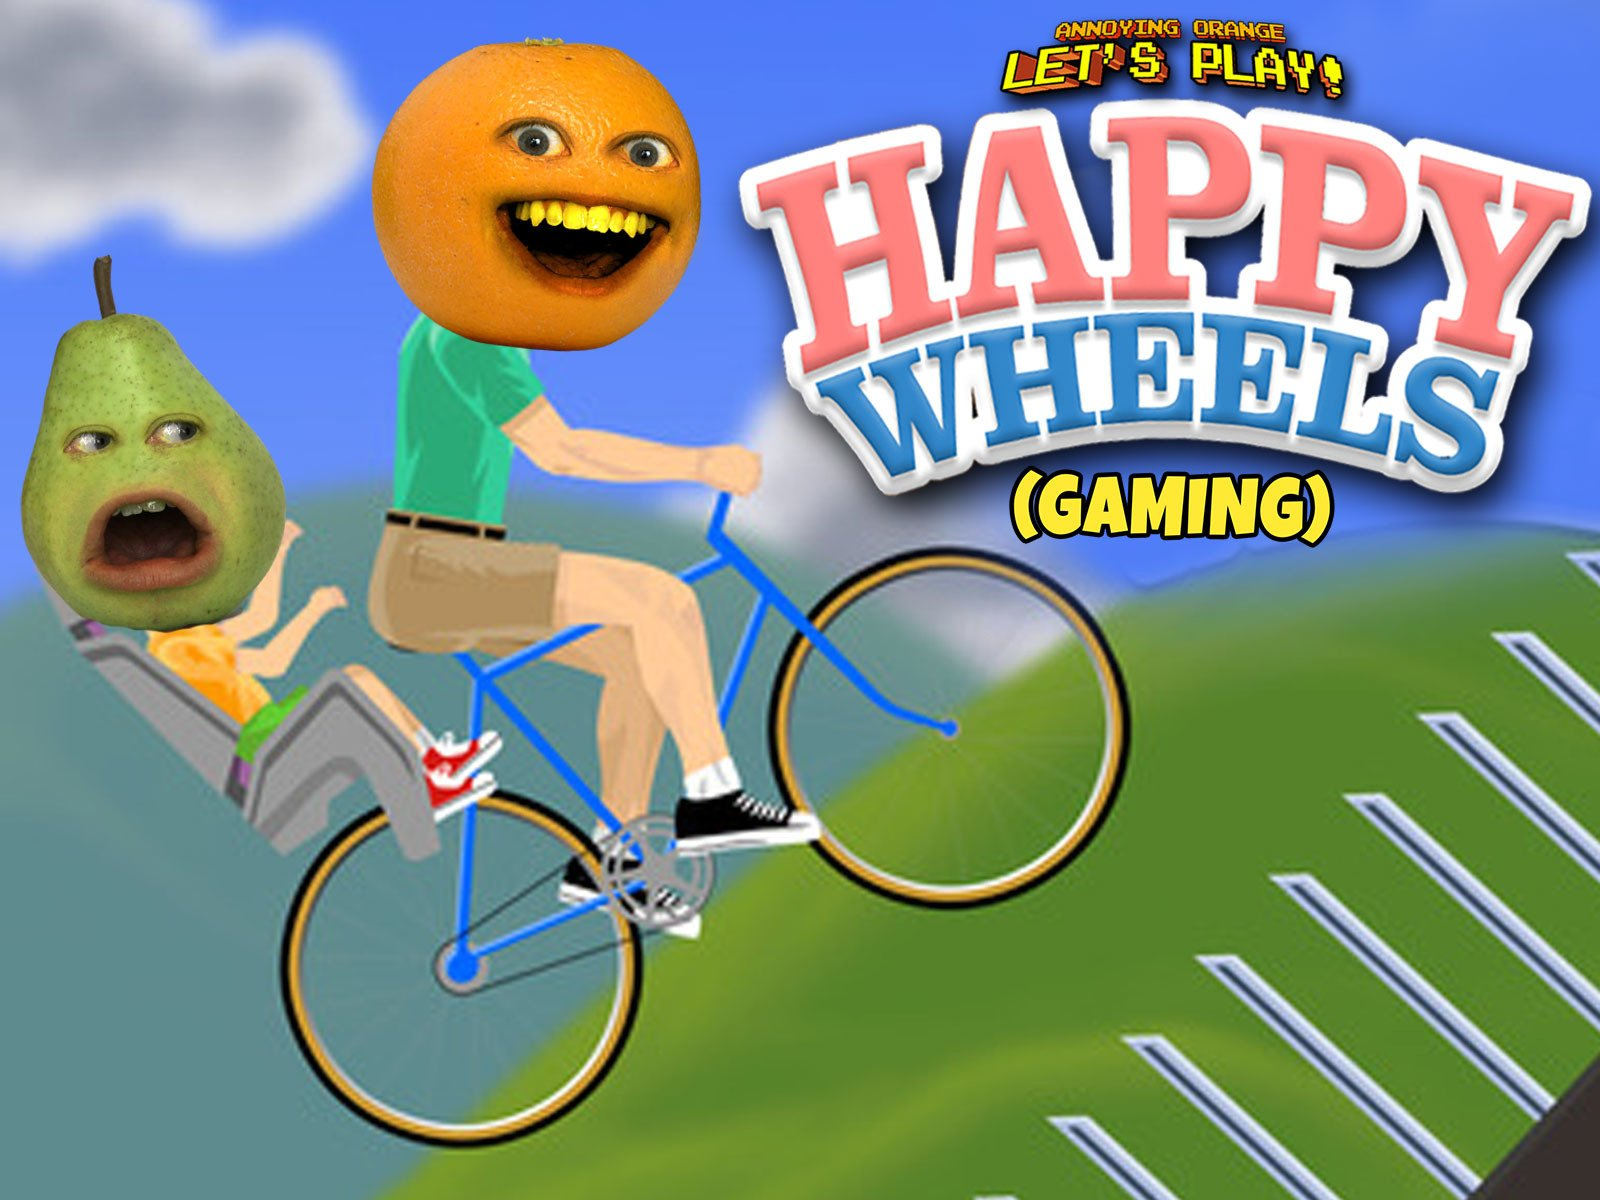 amazon com clip annoying orange let s play happy wheels gaming